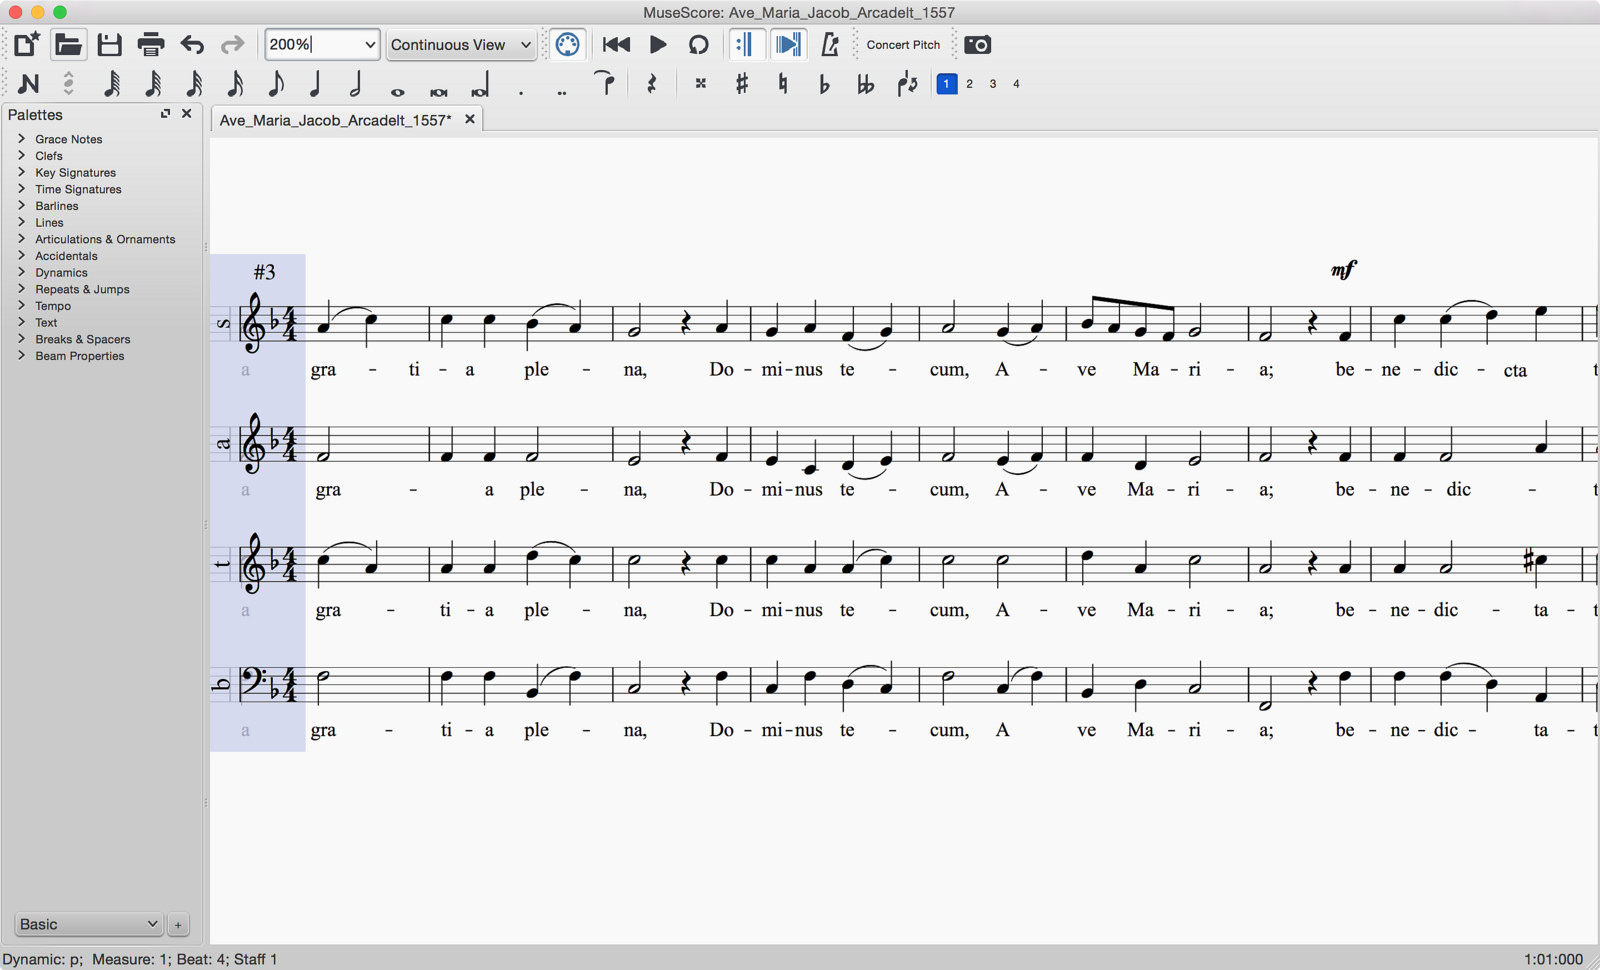 An Interview With Thomas Bonte On The Release Of Musescore 20 Zoomedhowtoreadukuleletabsandchorddiagrams A Score In Continuous View New